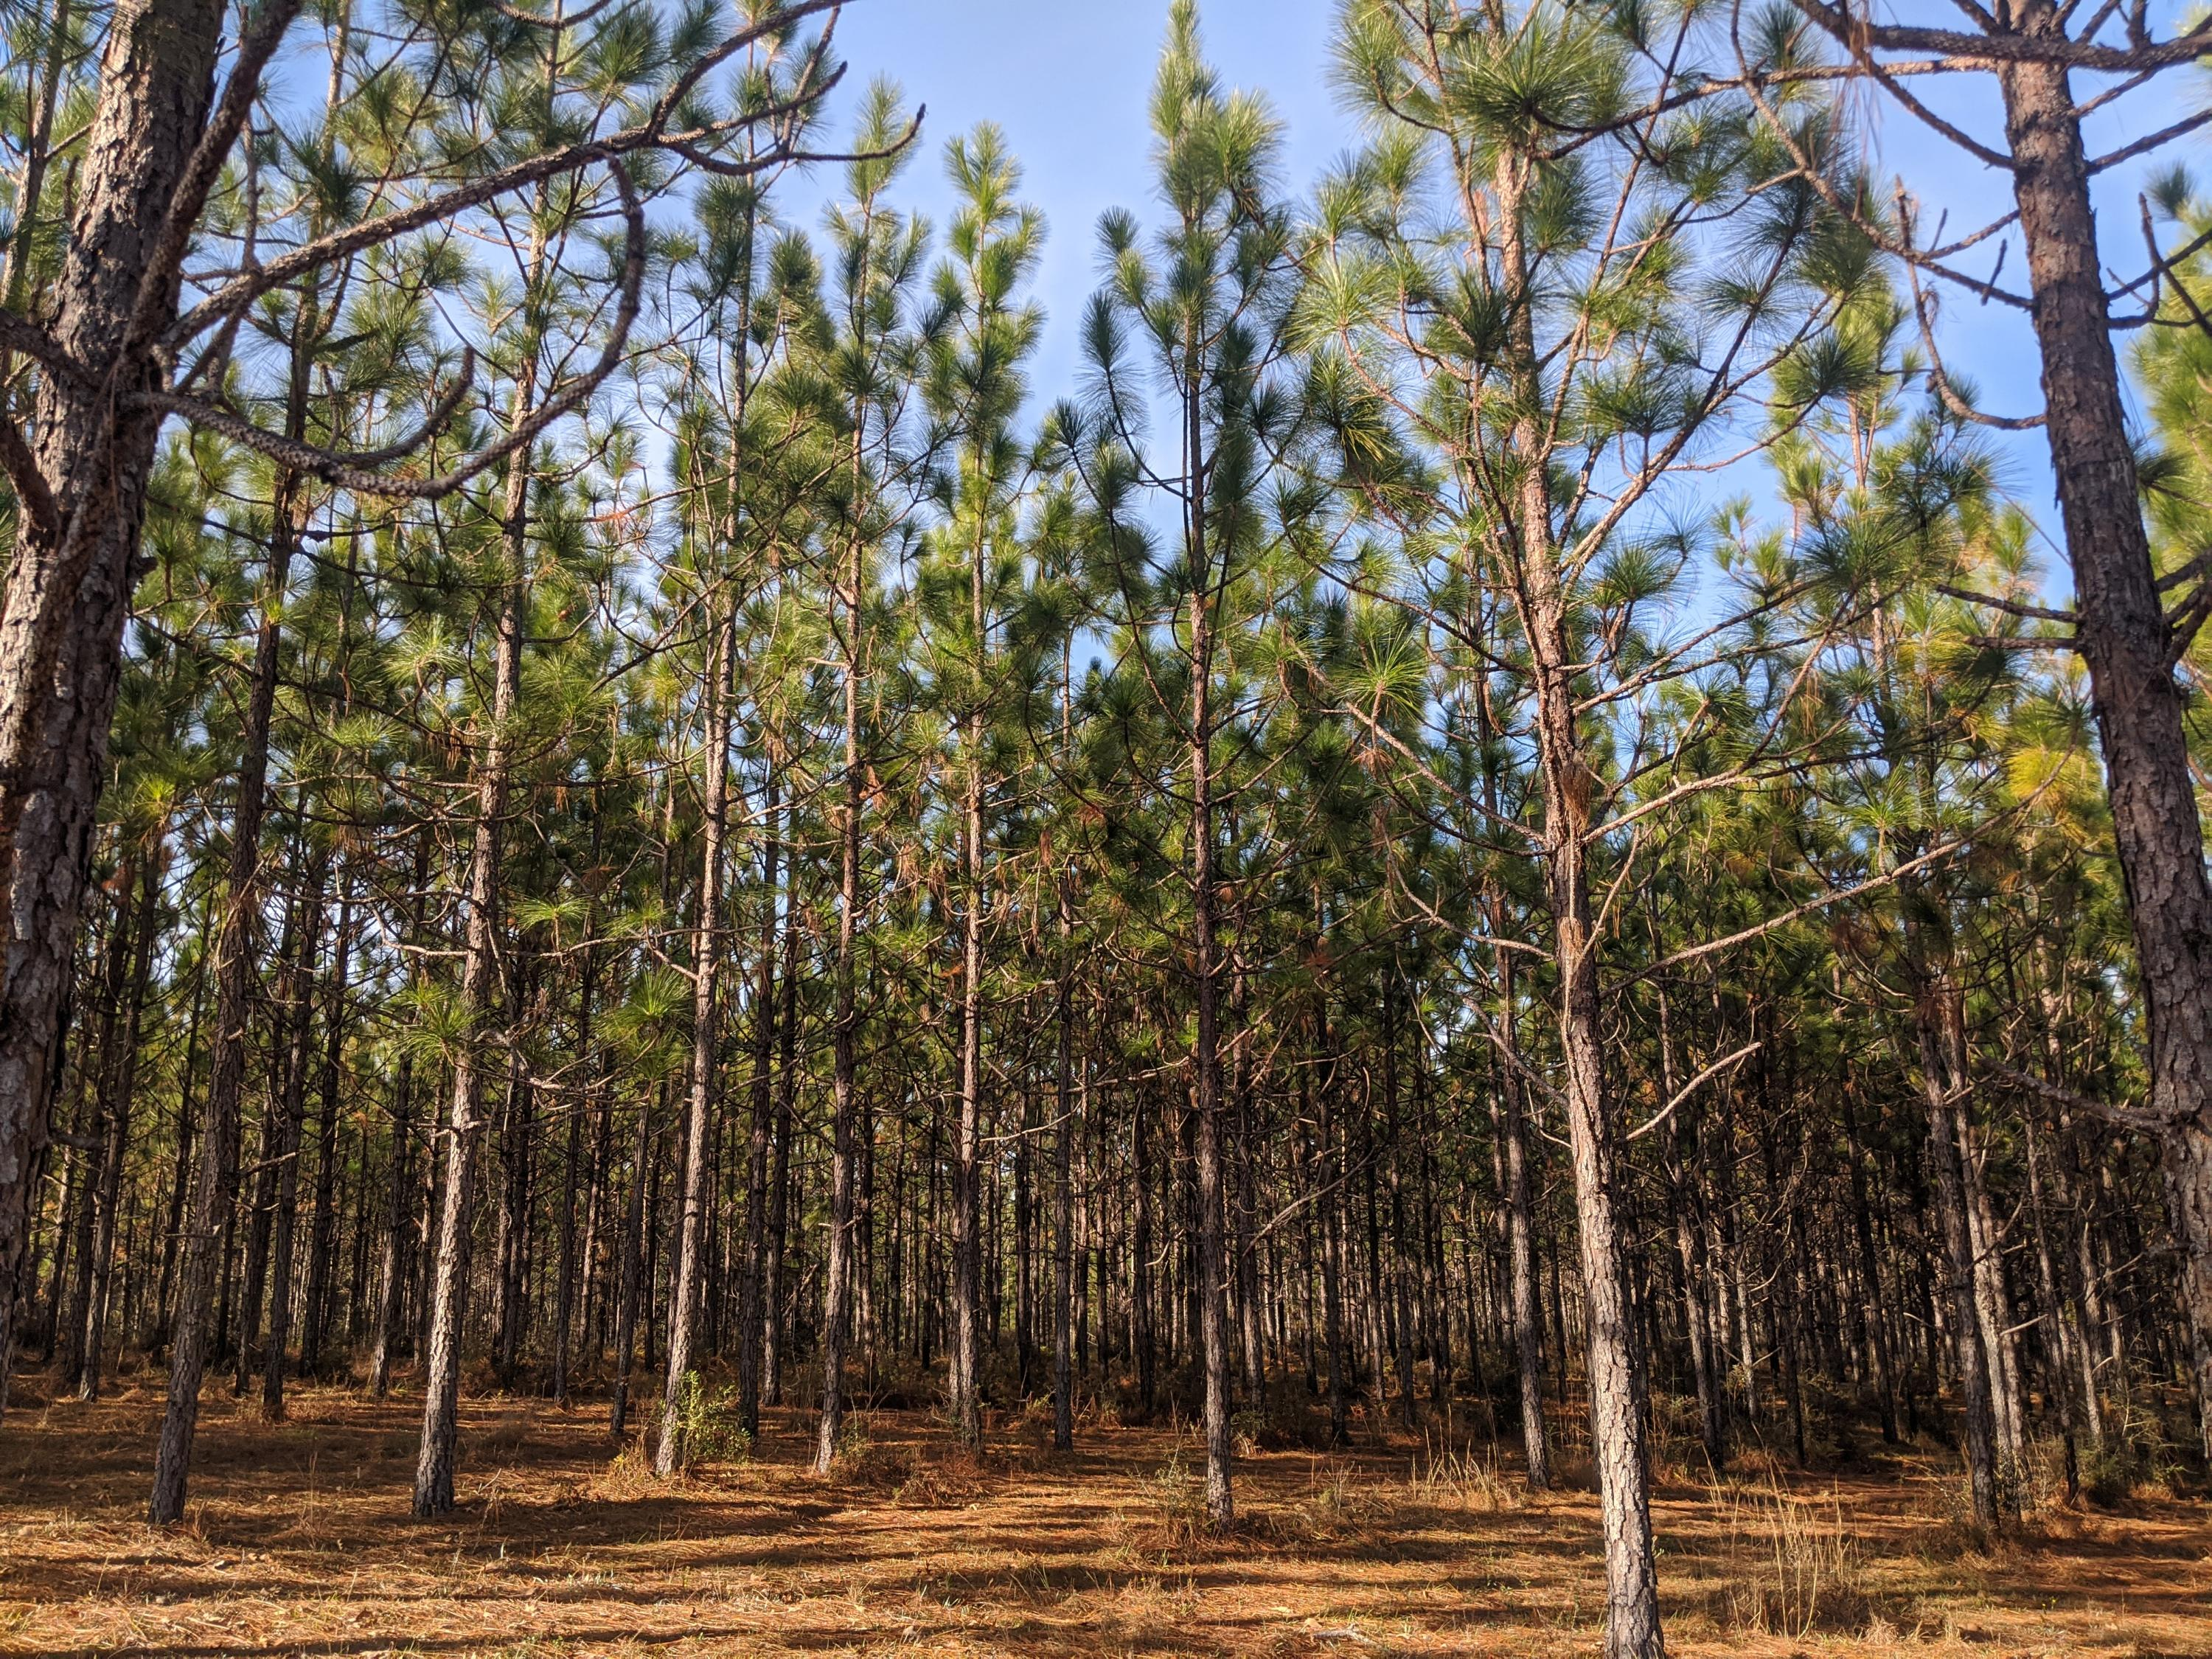 Great piece of property! 40 acres in ever growing Defuniak Springs. Close to the airport. Seller is